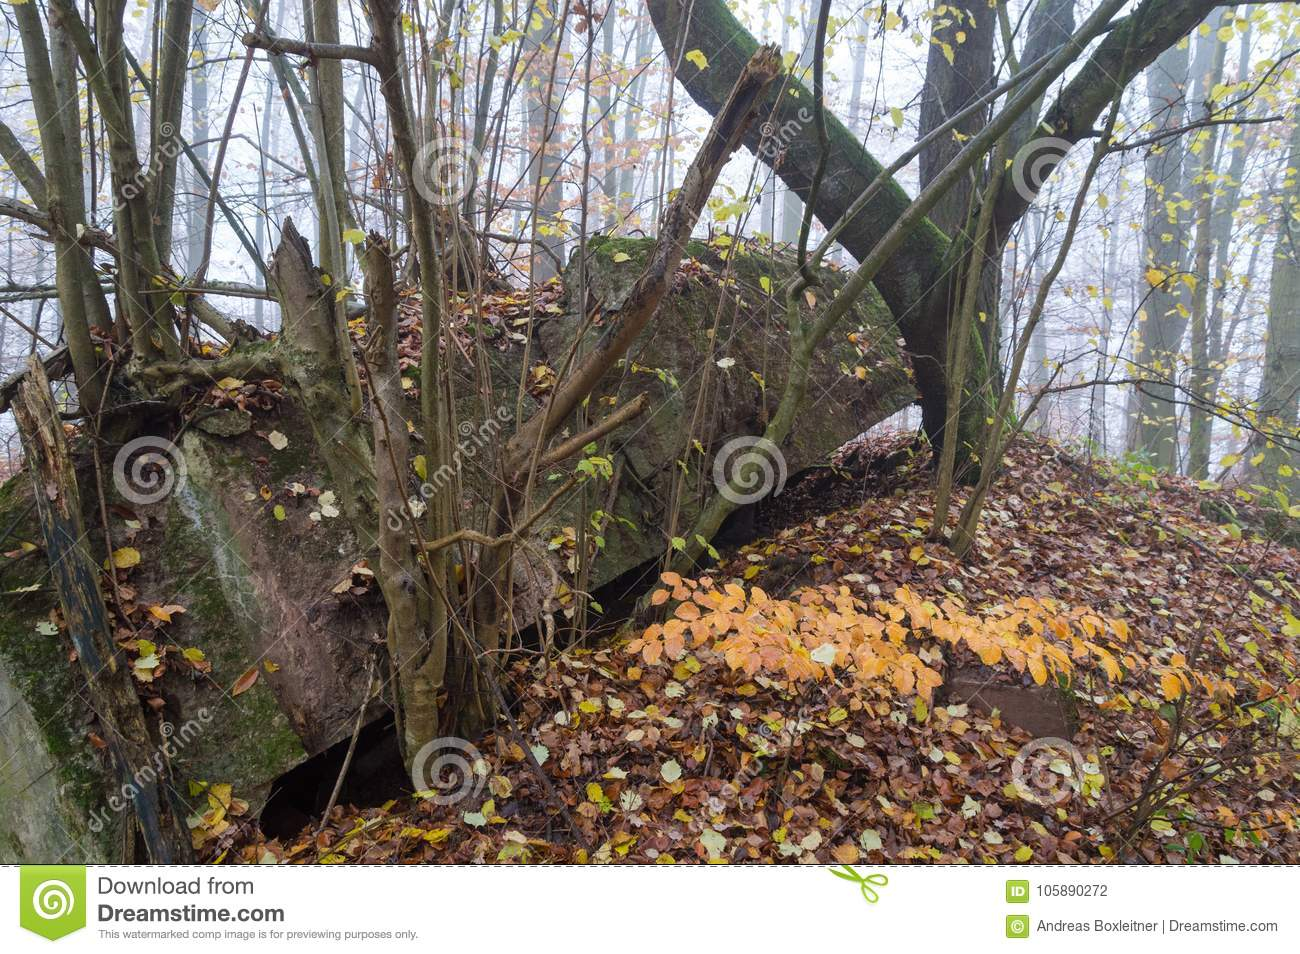 WW2 bunker in germany stock photo  Image of germany - 105890272